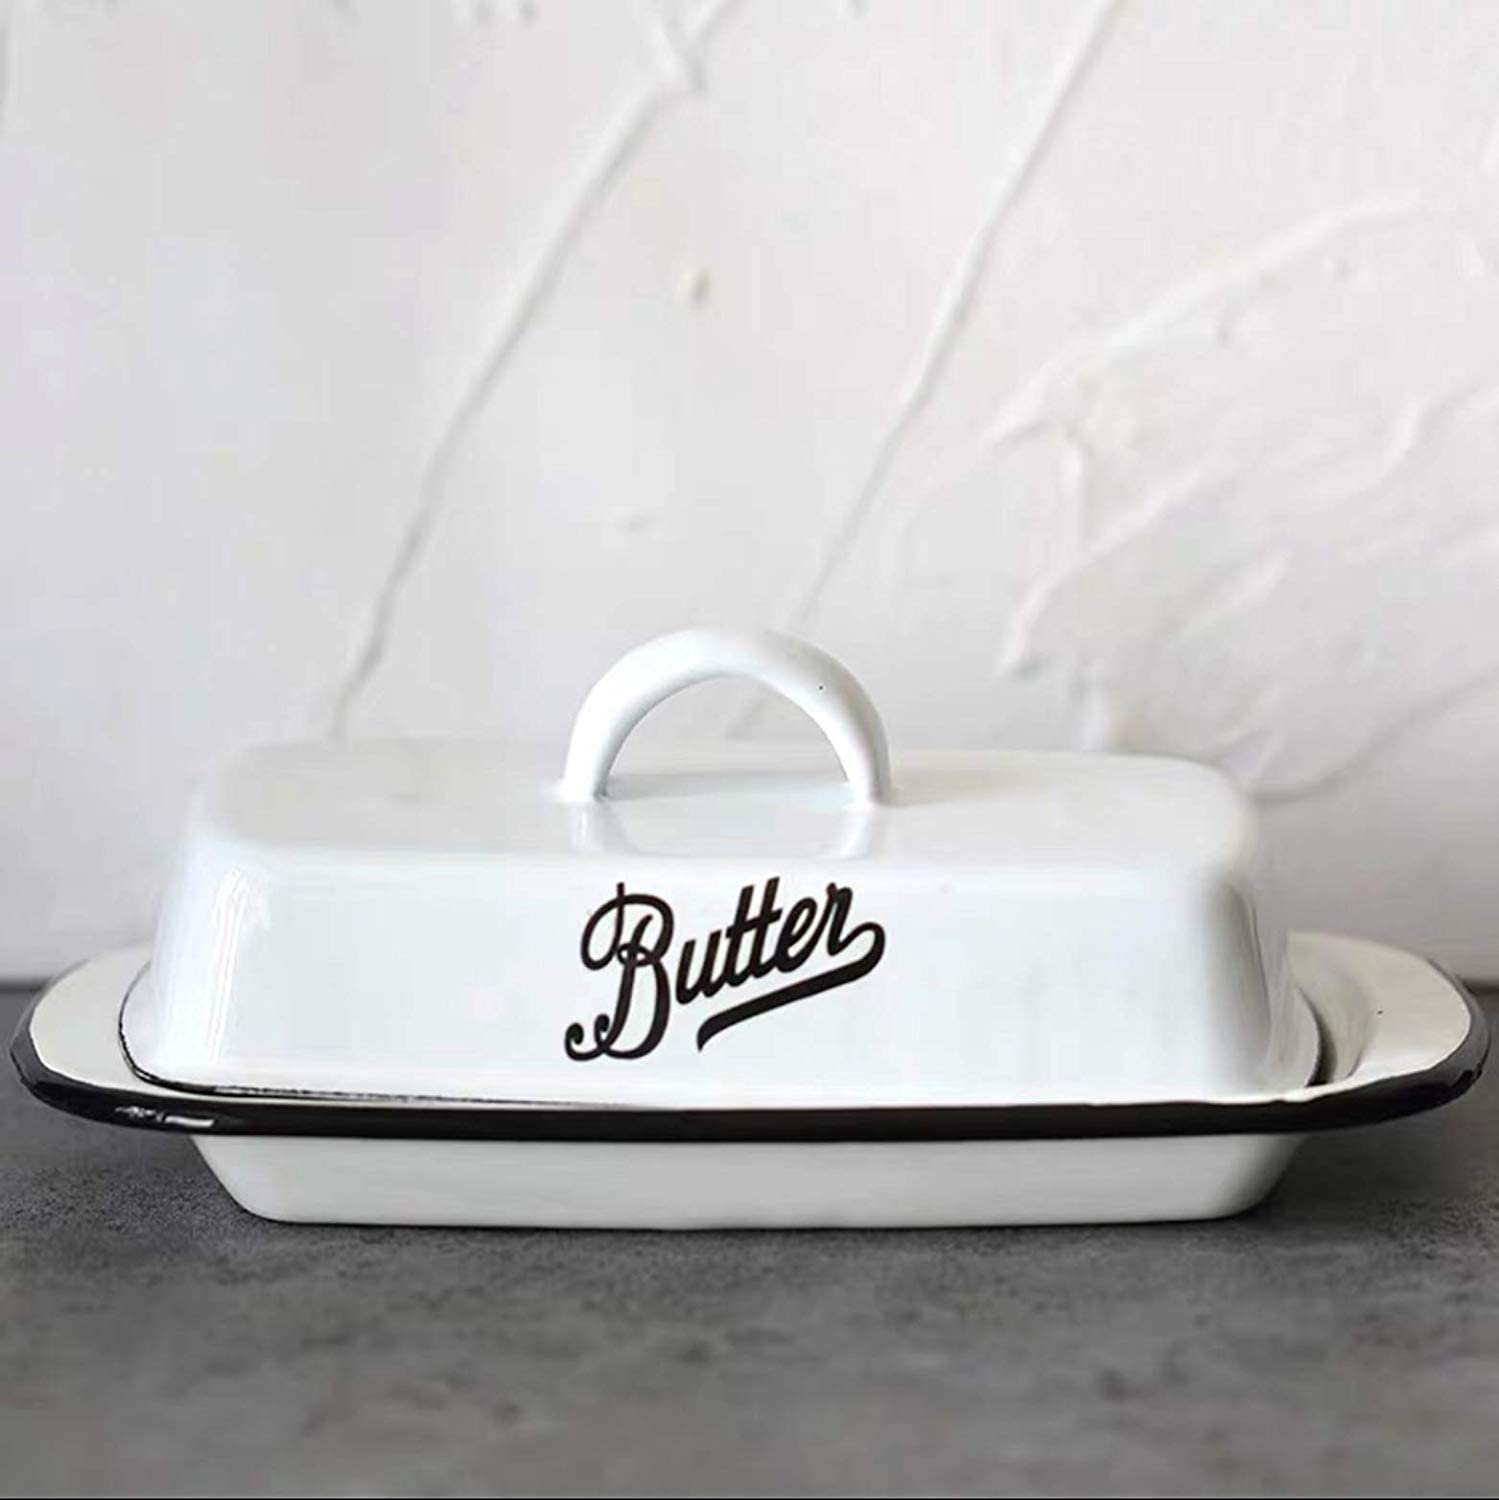 Color : Colour, Size : Size Reeseiy White Enamel Butter Dish With Lid Butter Plates Butter Dish Tray Dinnerware Sets Serving Tray Sale Home Daily Use Product